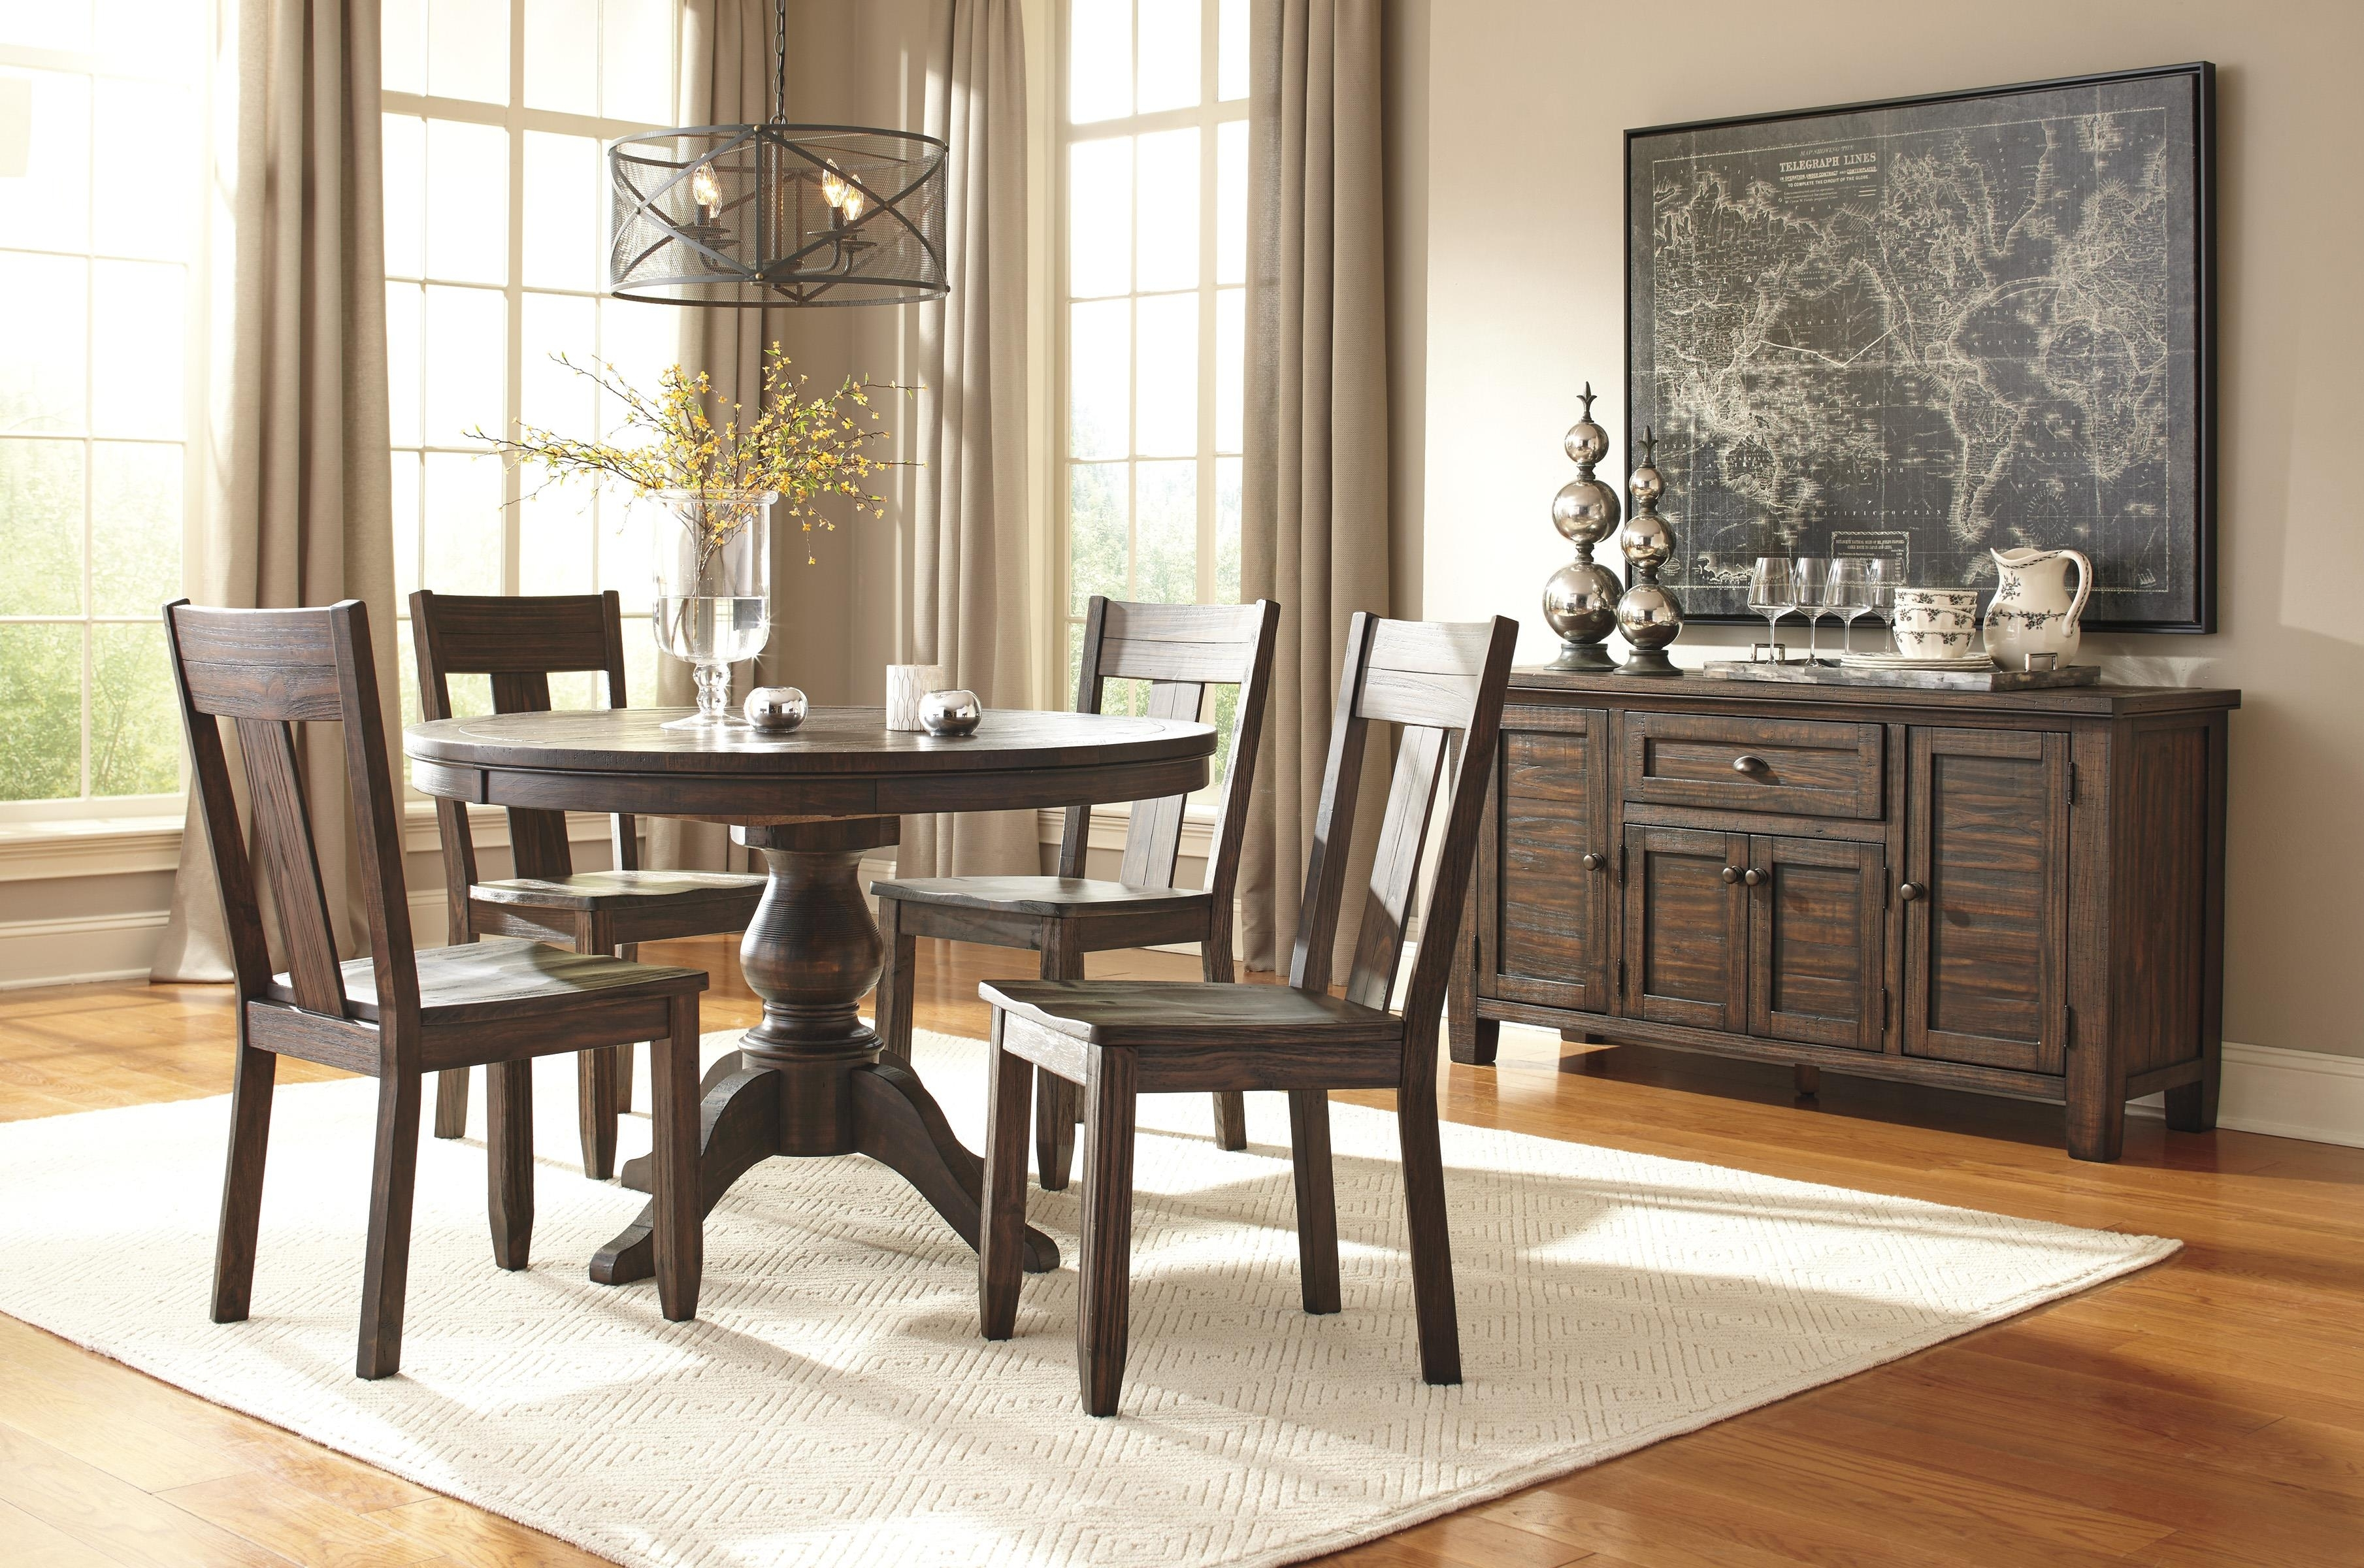 Signature Designashley Trudell 5 Piece Round Dining Table Set Pertaining To Current Jaxon 5 Piece Extension Counter Sets With Wood Stools (Image 20 of 20)